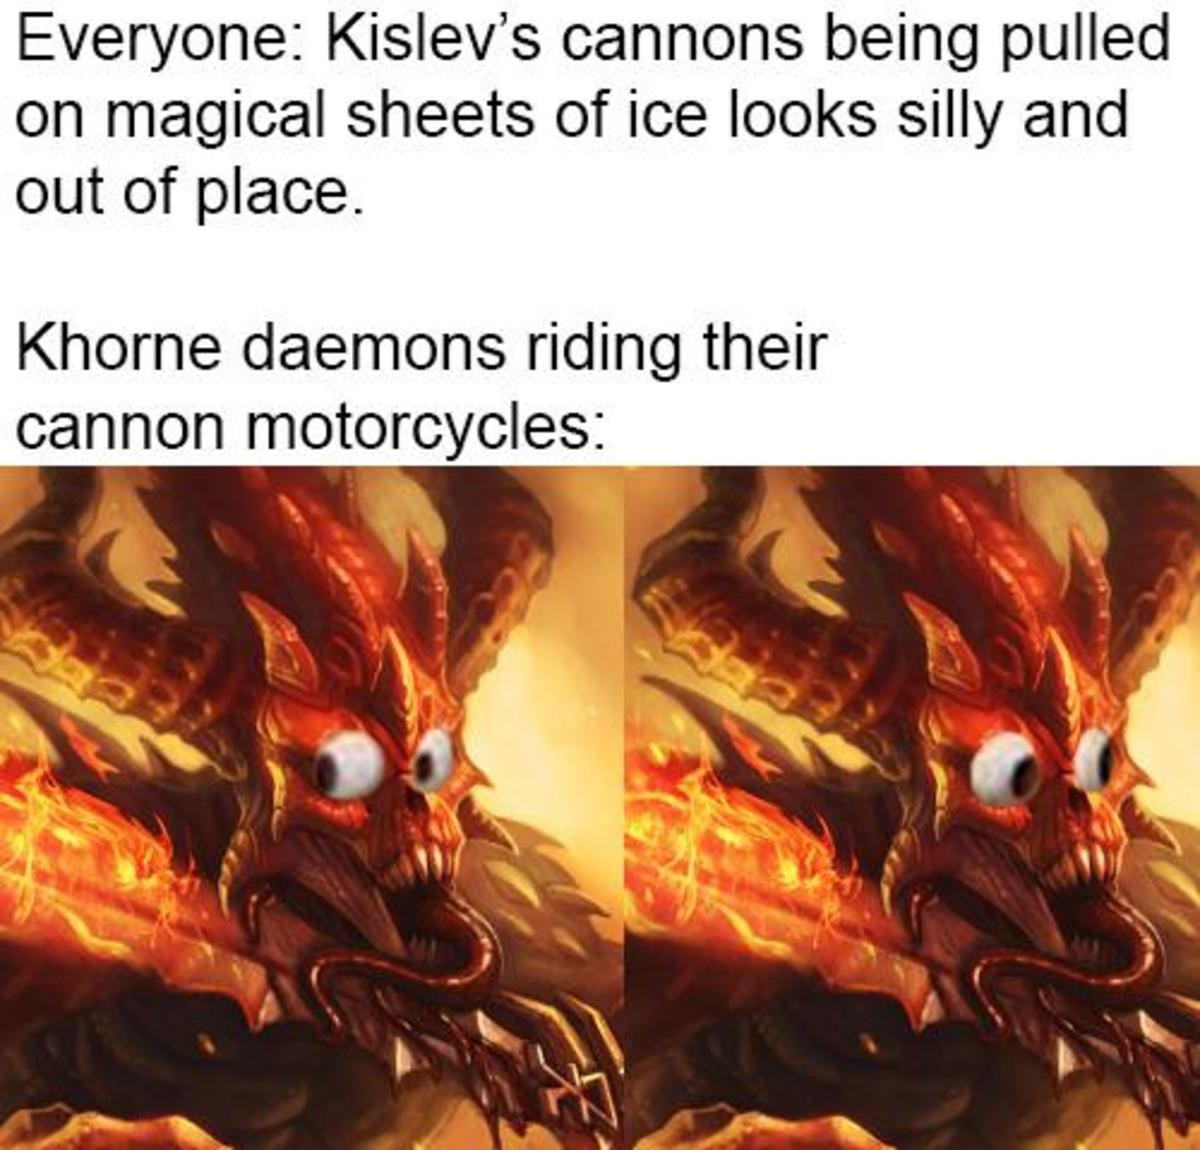 Muh low fantasy, muh grounded in reality. .. Oh man god forbid the ice-skate cannon looks silly next to the dwarven gyrobombers, giant rat wheel laser cannon, war sphynx or steamtank.